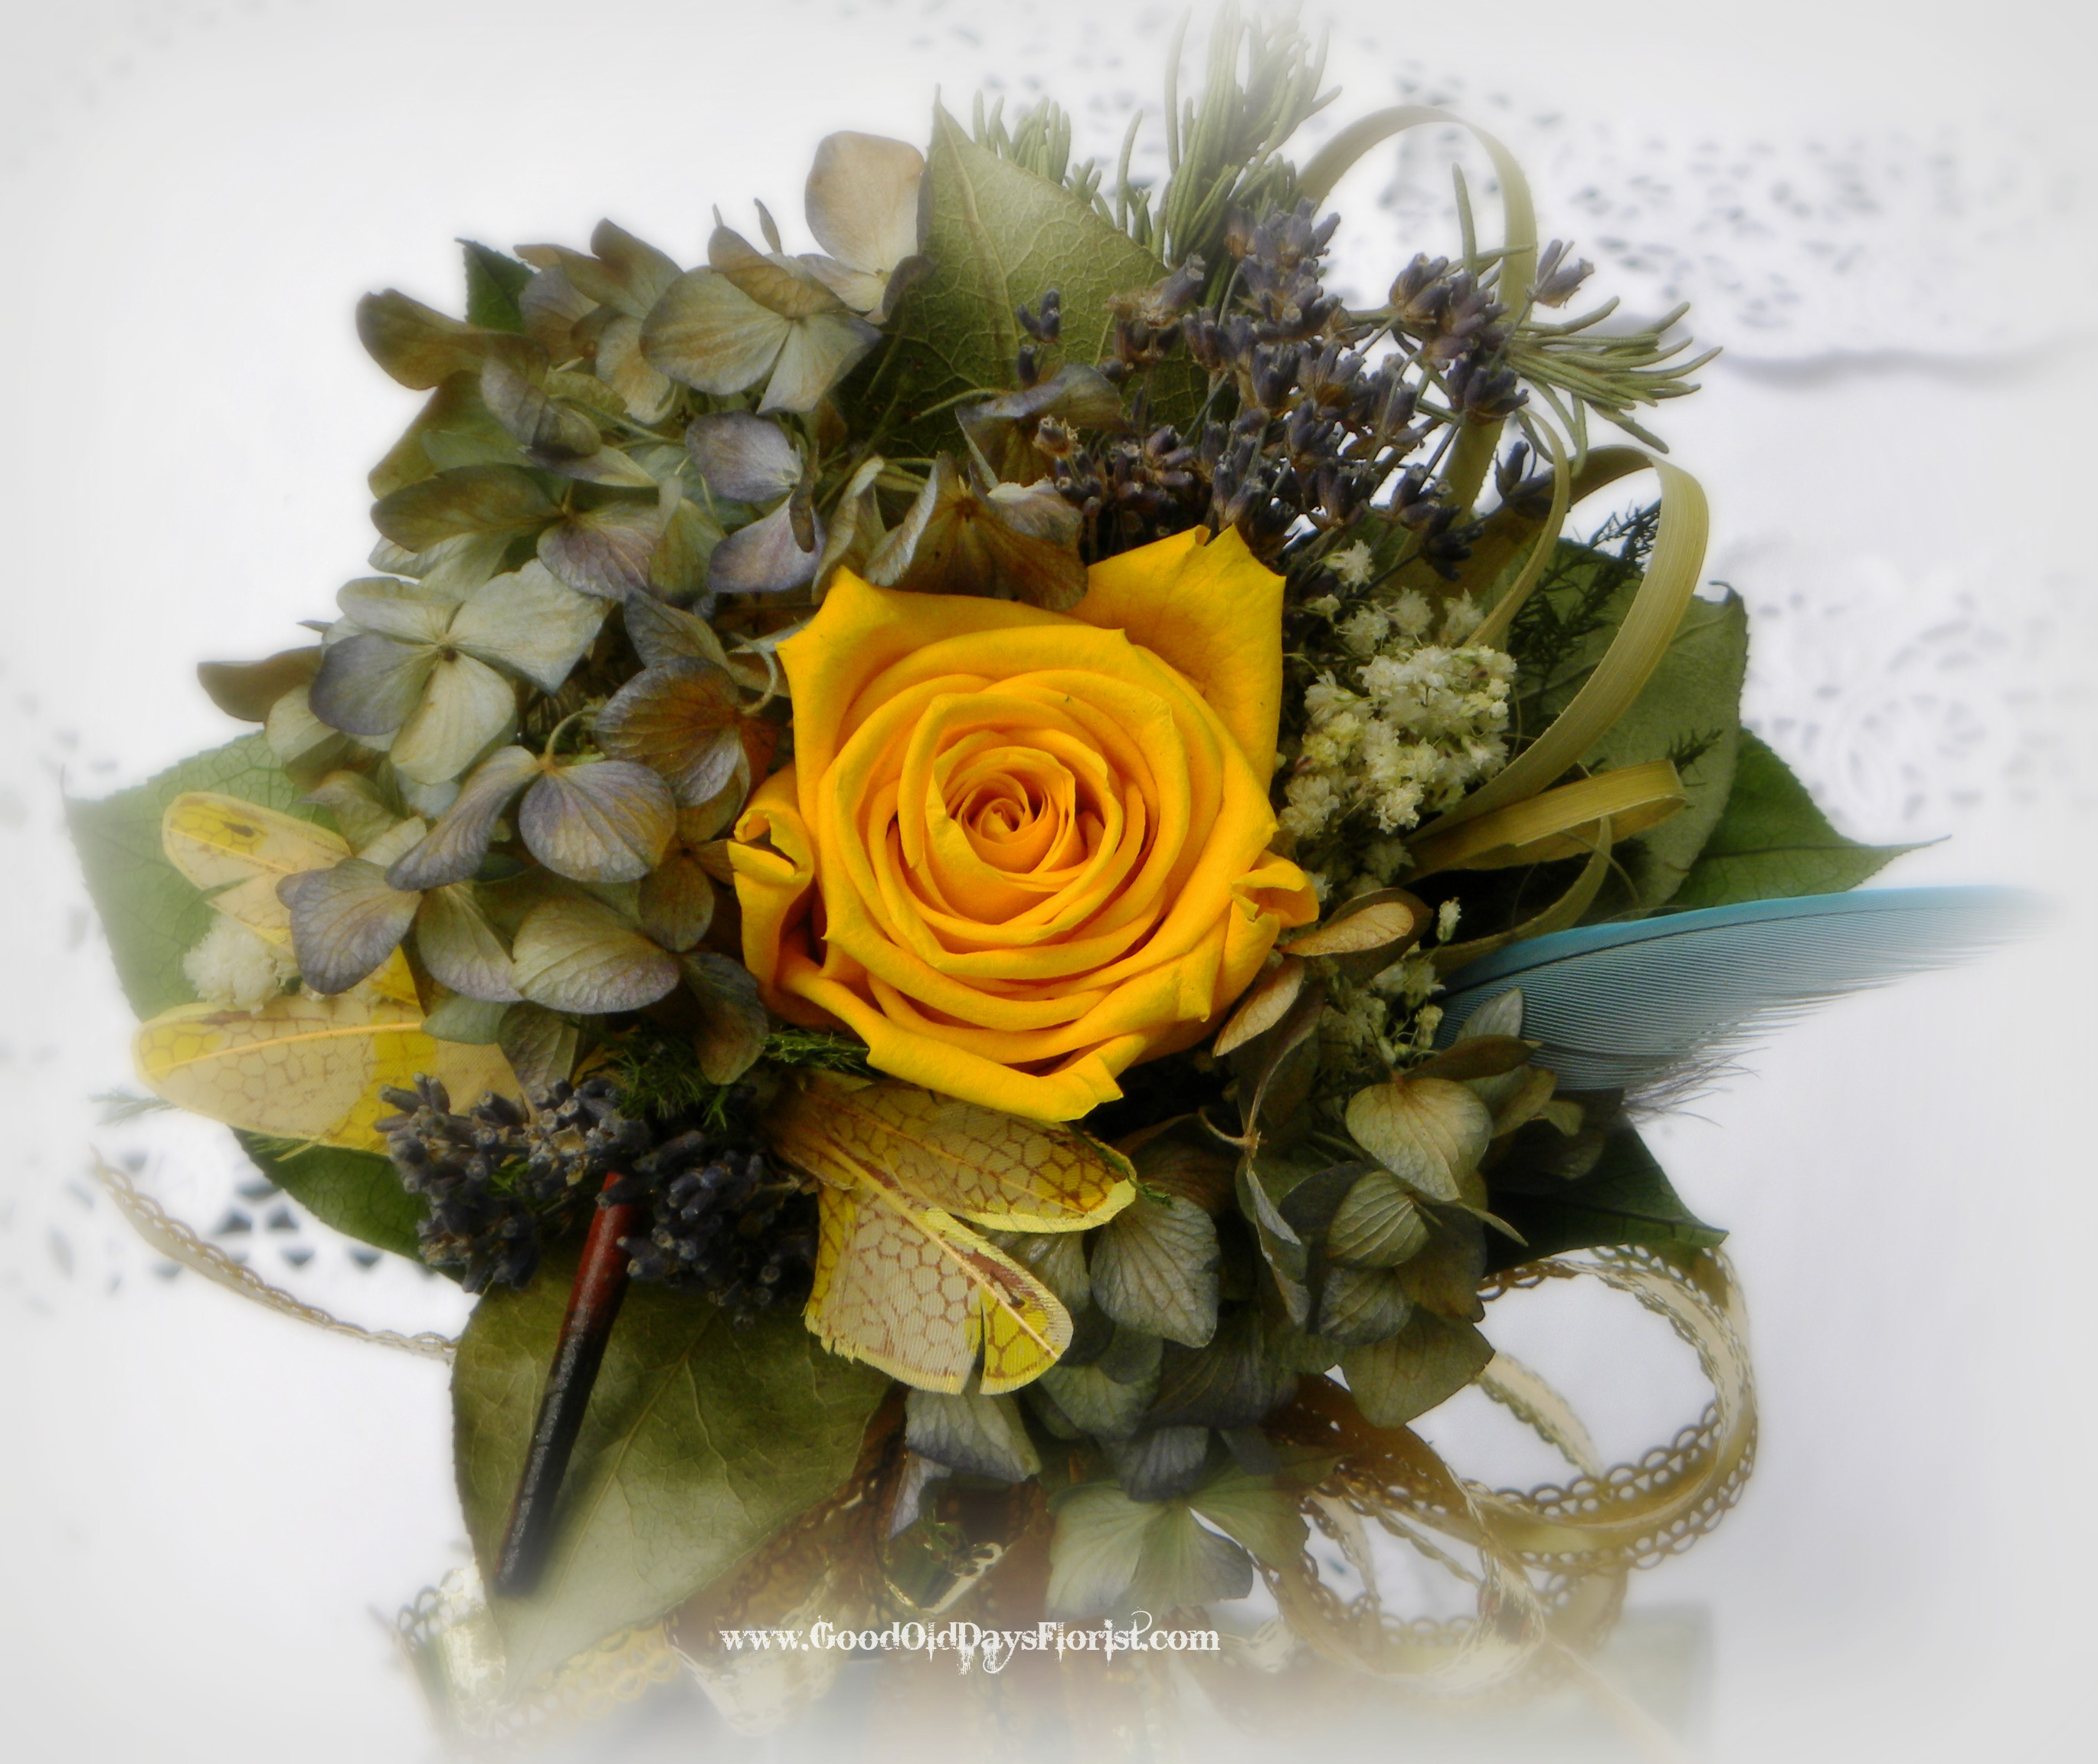 Meaningful Wedding Flowers-Create a bouquet of thought